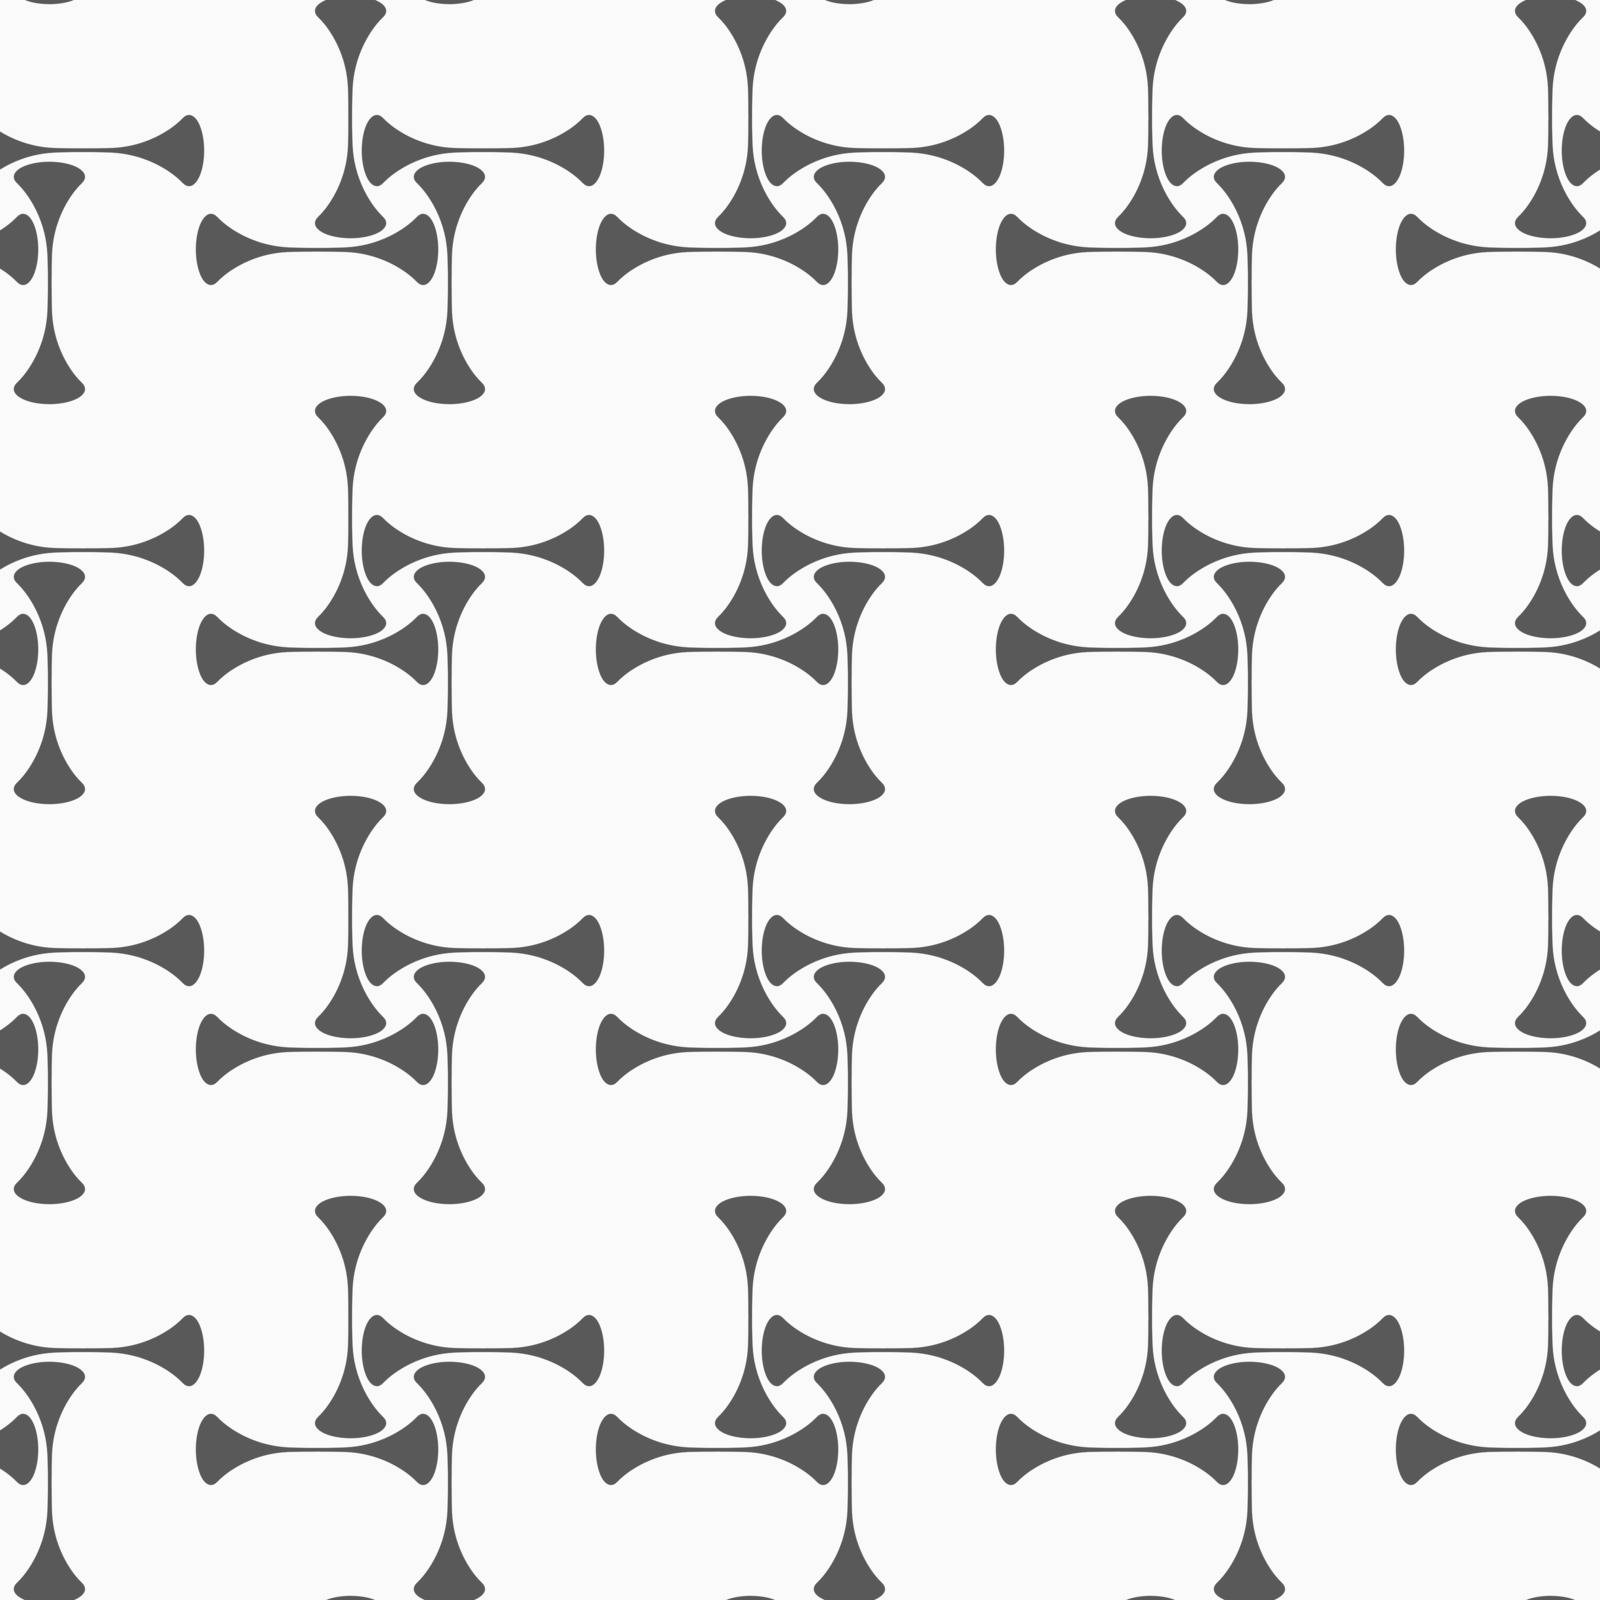 Monochrome abstract geometrical pattern. Modern gray seamless background. Flat simple design.Gray vertical gray rotated clubs.